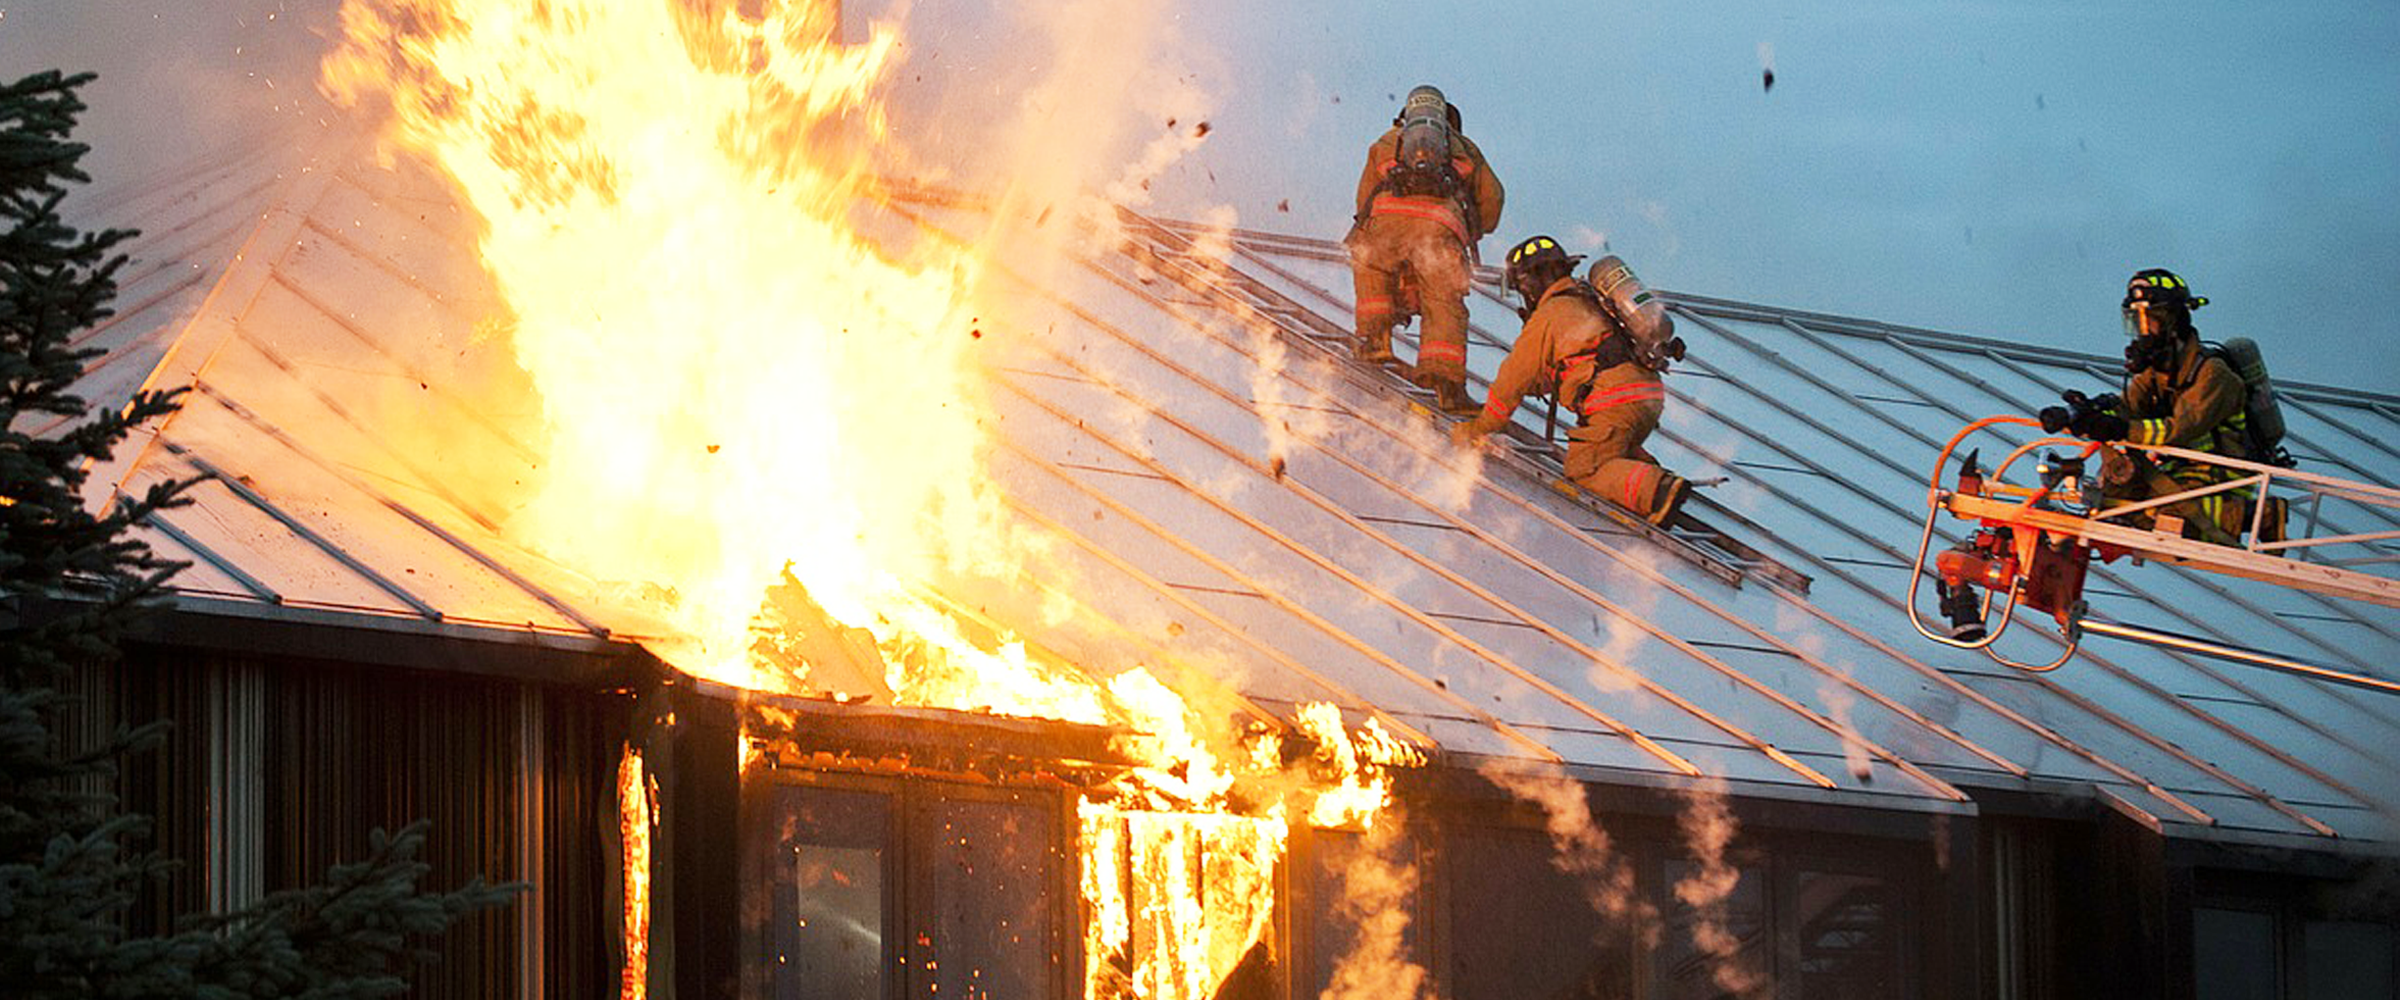 CA House Roof Fire Fighting